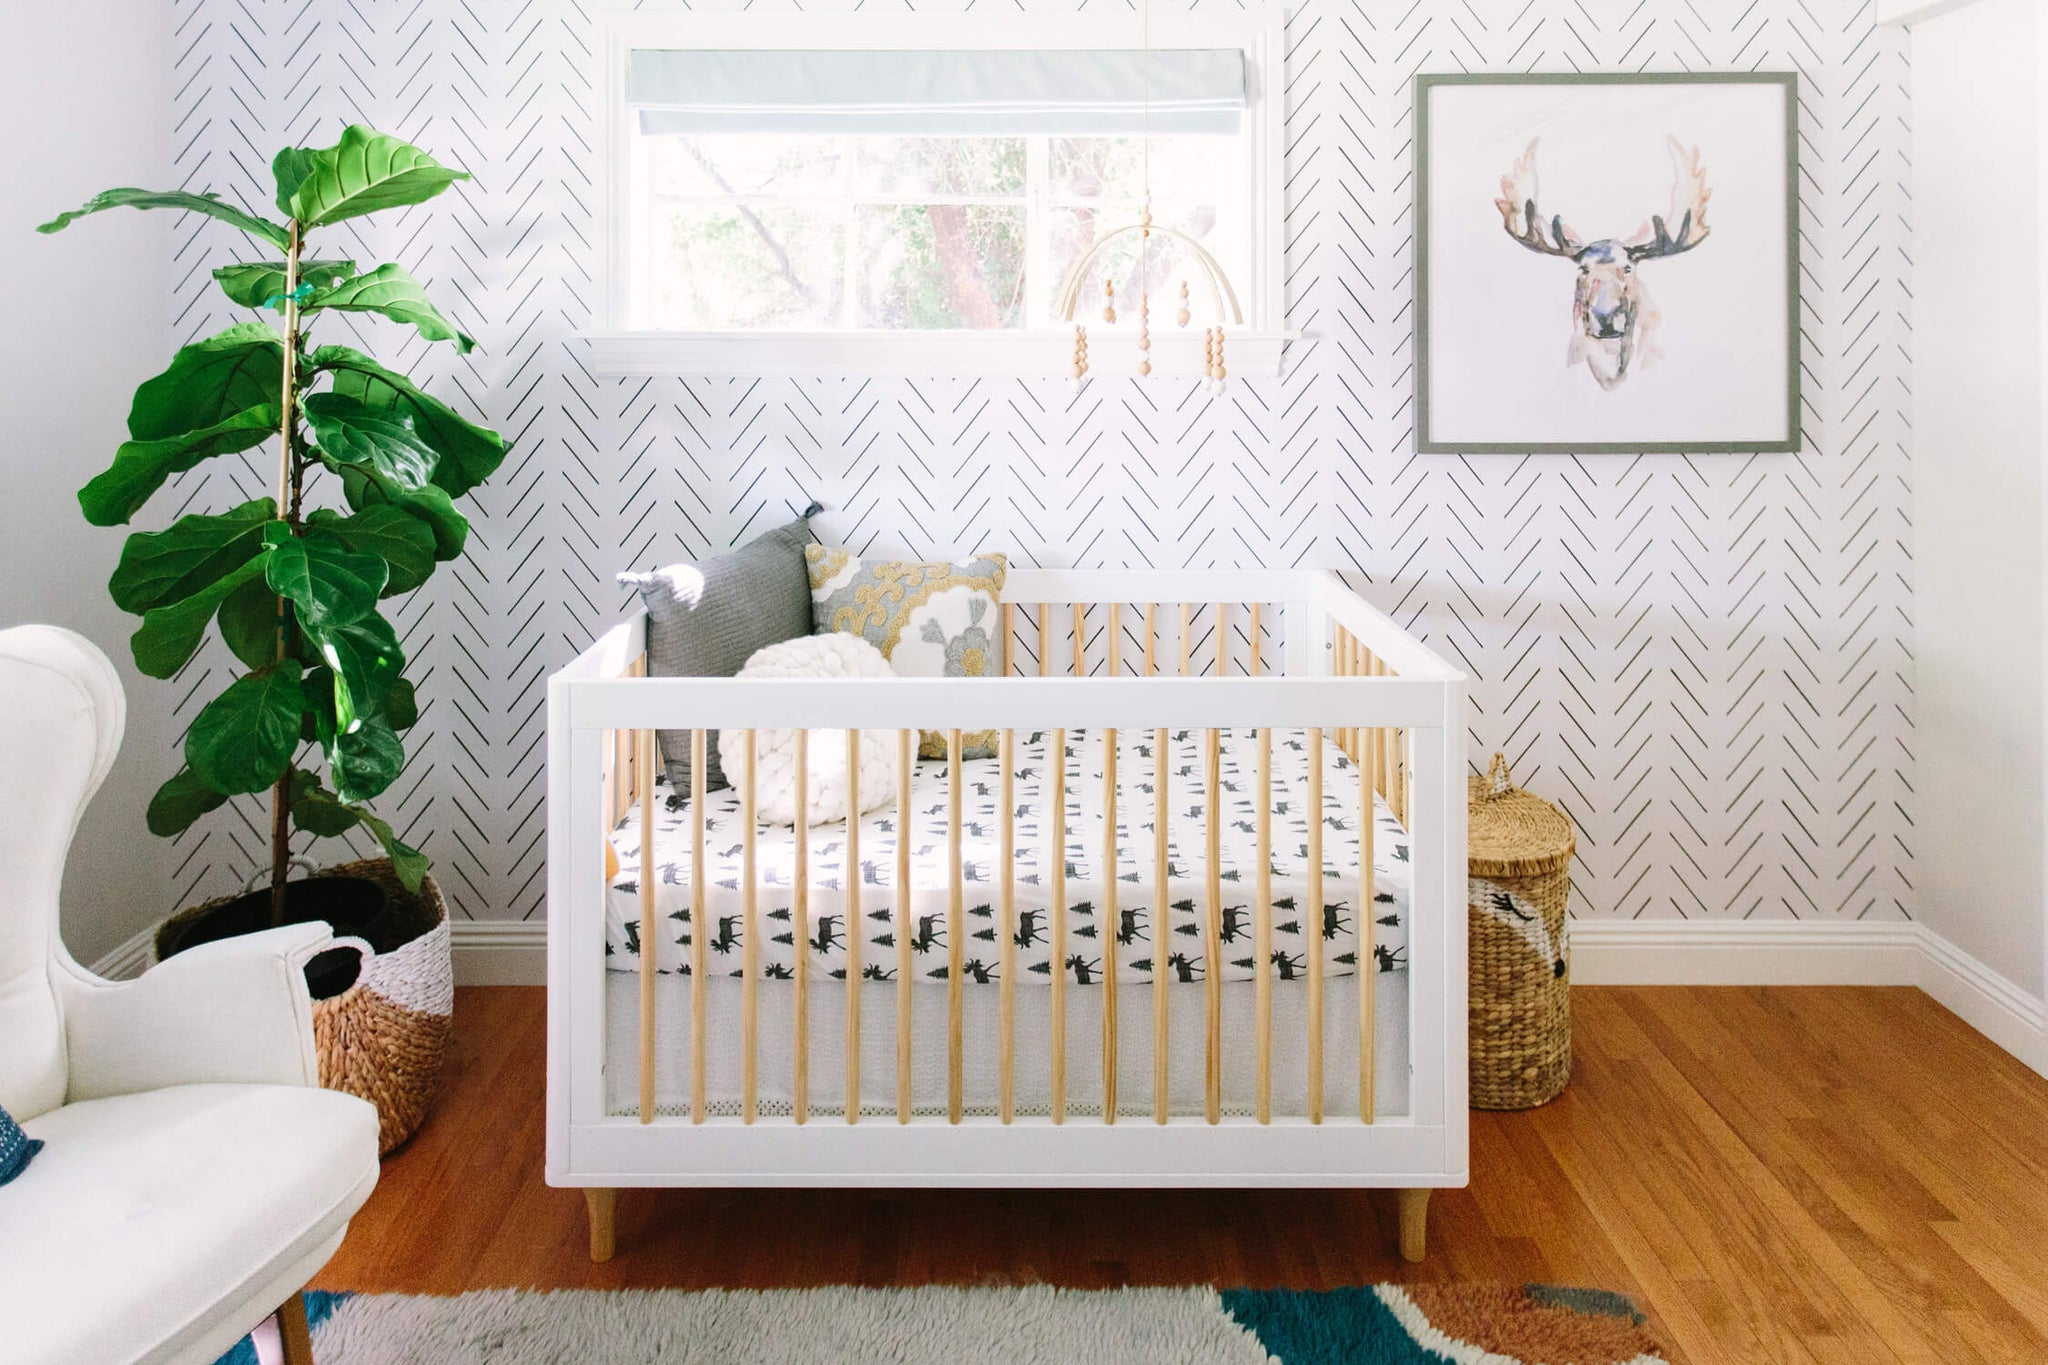 Modern woodland theme nursery for baby boy with herringbone removable wallpaper, moose art print, and colorful area rug.